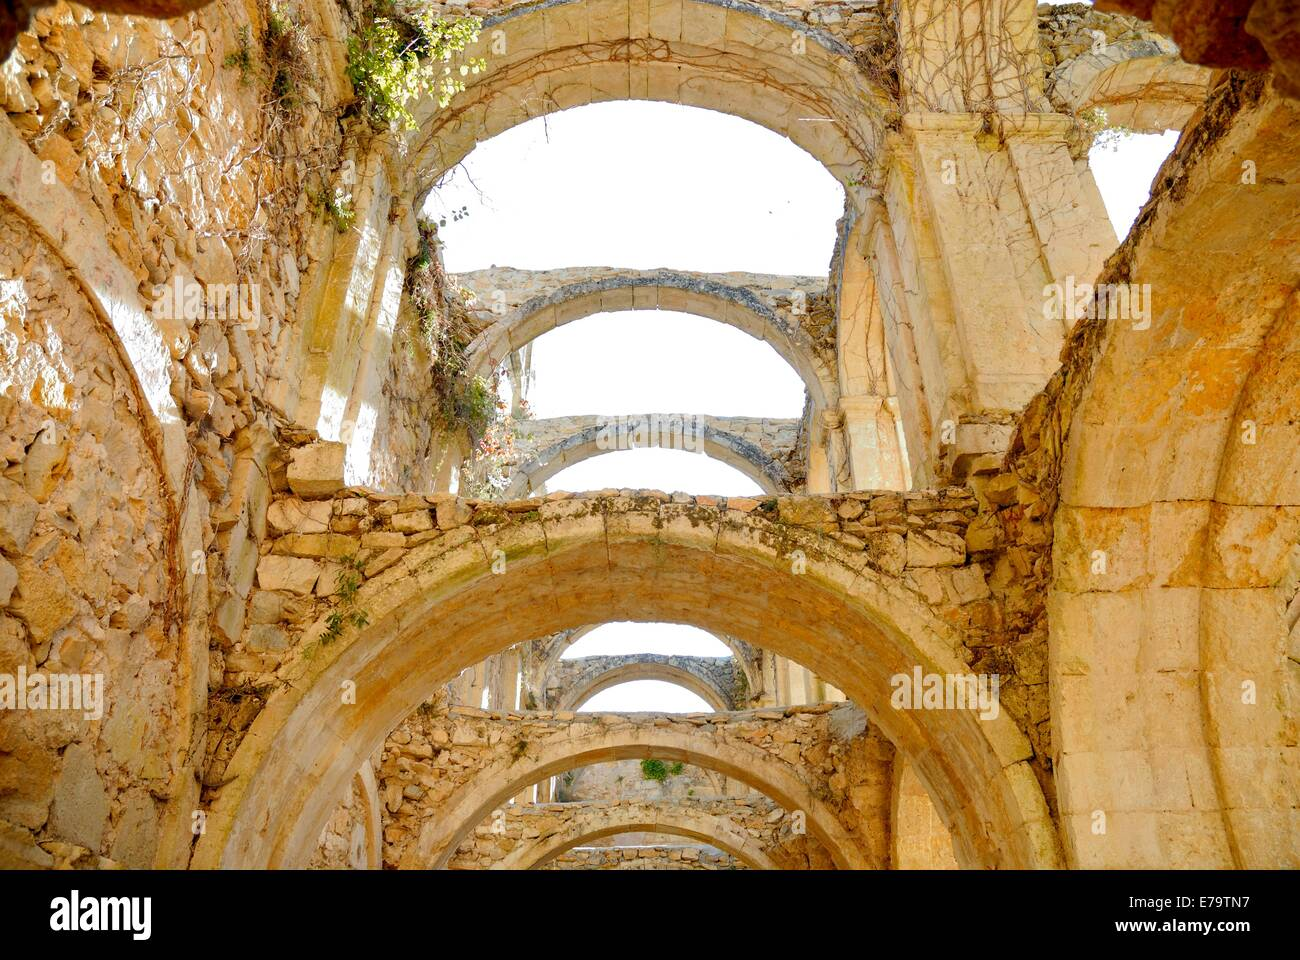 monastery rio seco spain, monastery that is rebuilding and recovering from a state of neglect - Stock Image